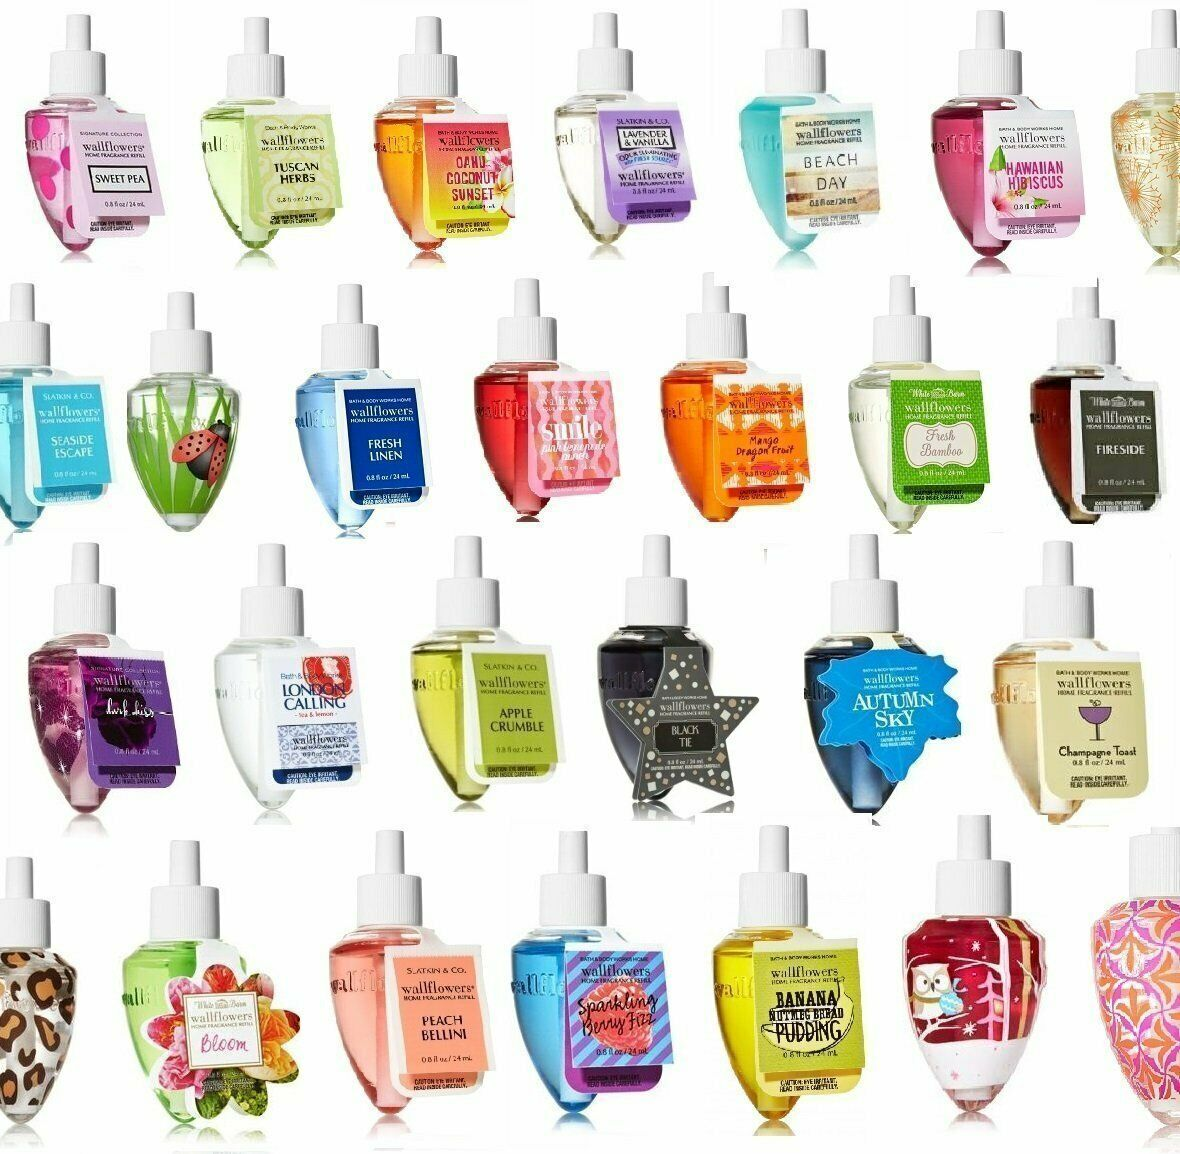 Authentic Bath And Body Works Wallflowers Home Fragrance Ref